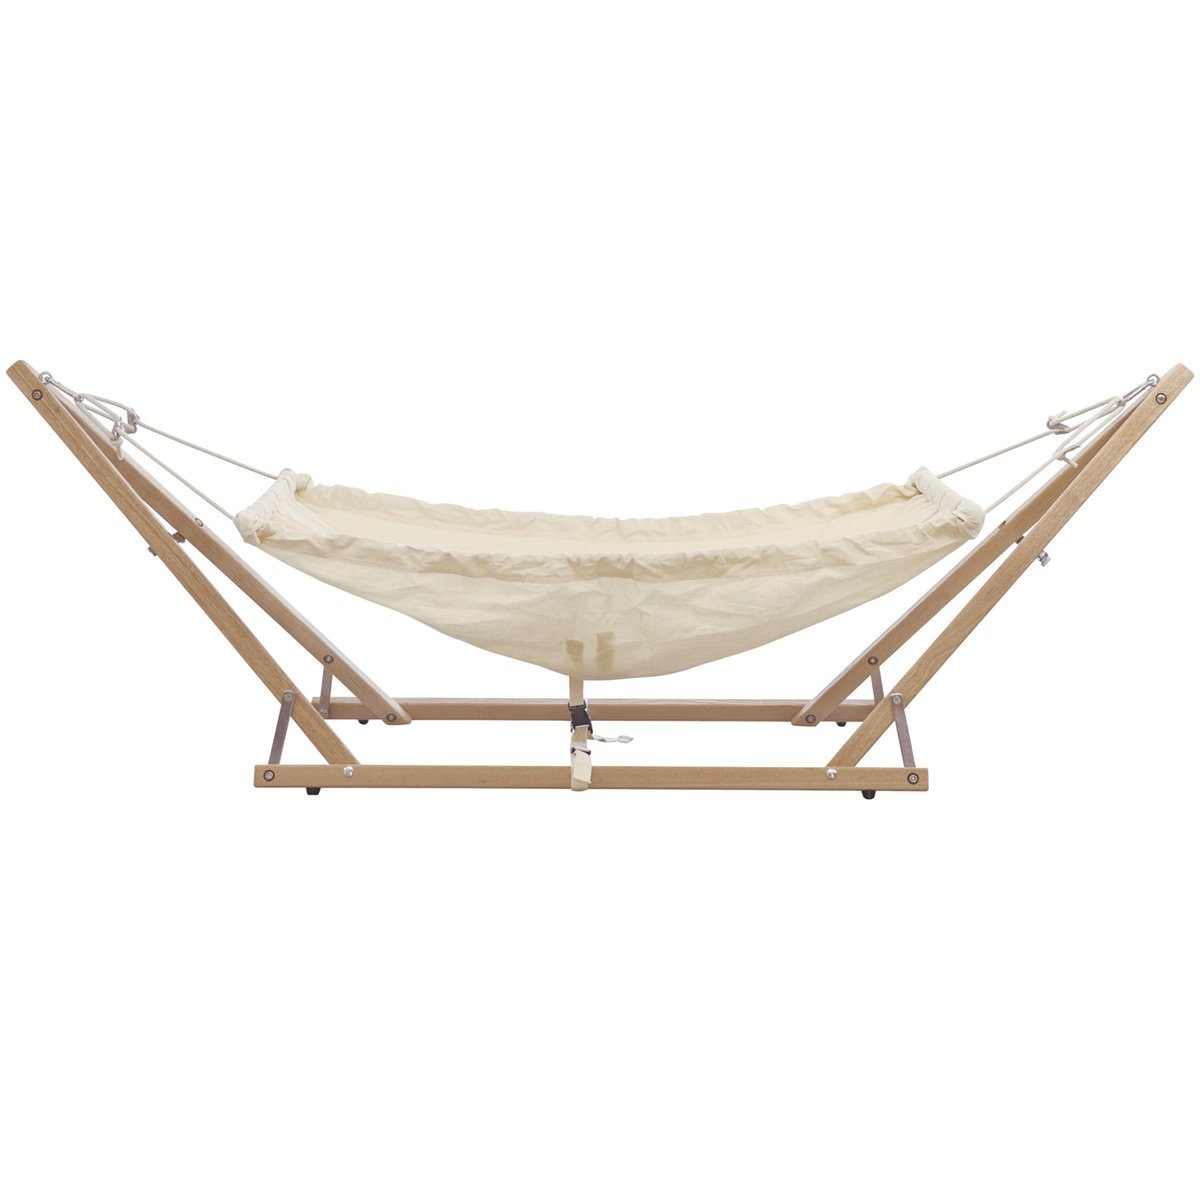 Amazonas Koala Baby Hammock Lightweight, Fold-able, and Secure Swing For Babies